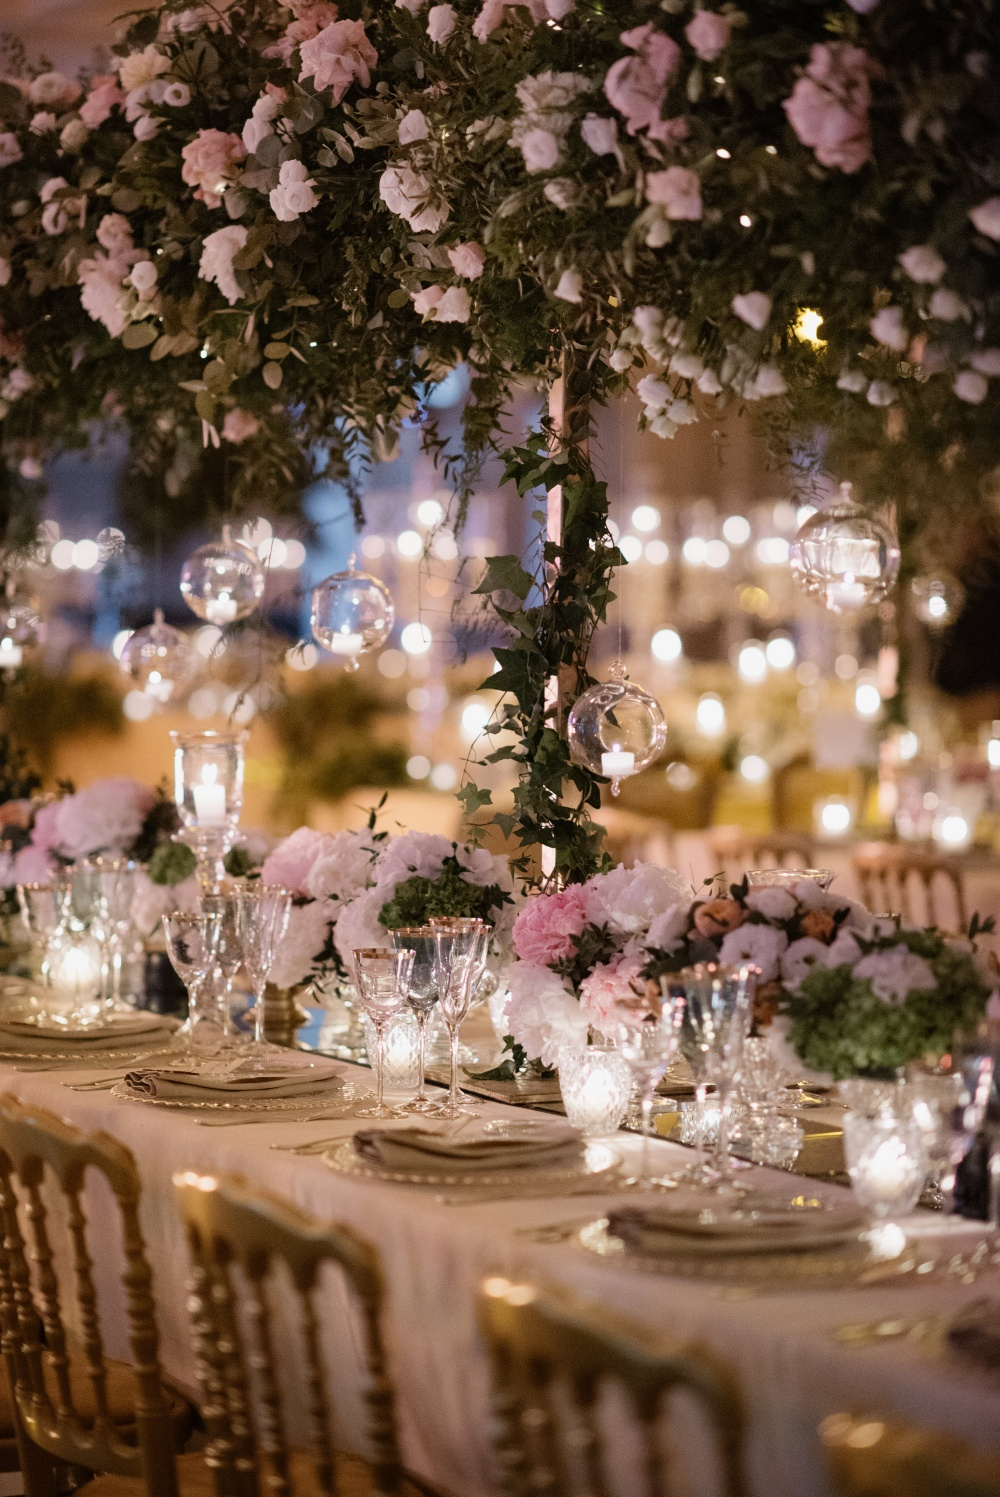 Table setting with ivory and pink flowers, hanging candles and cascading greenery